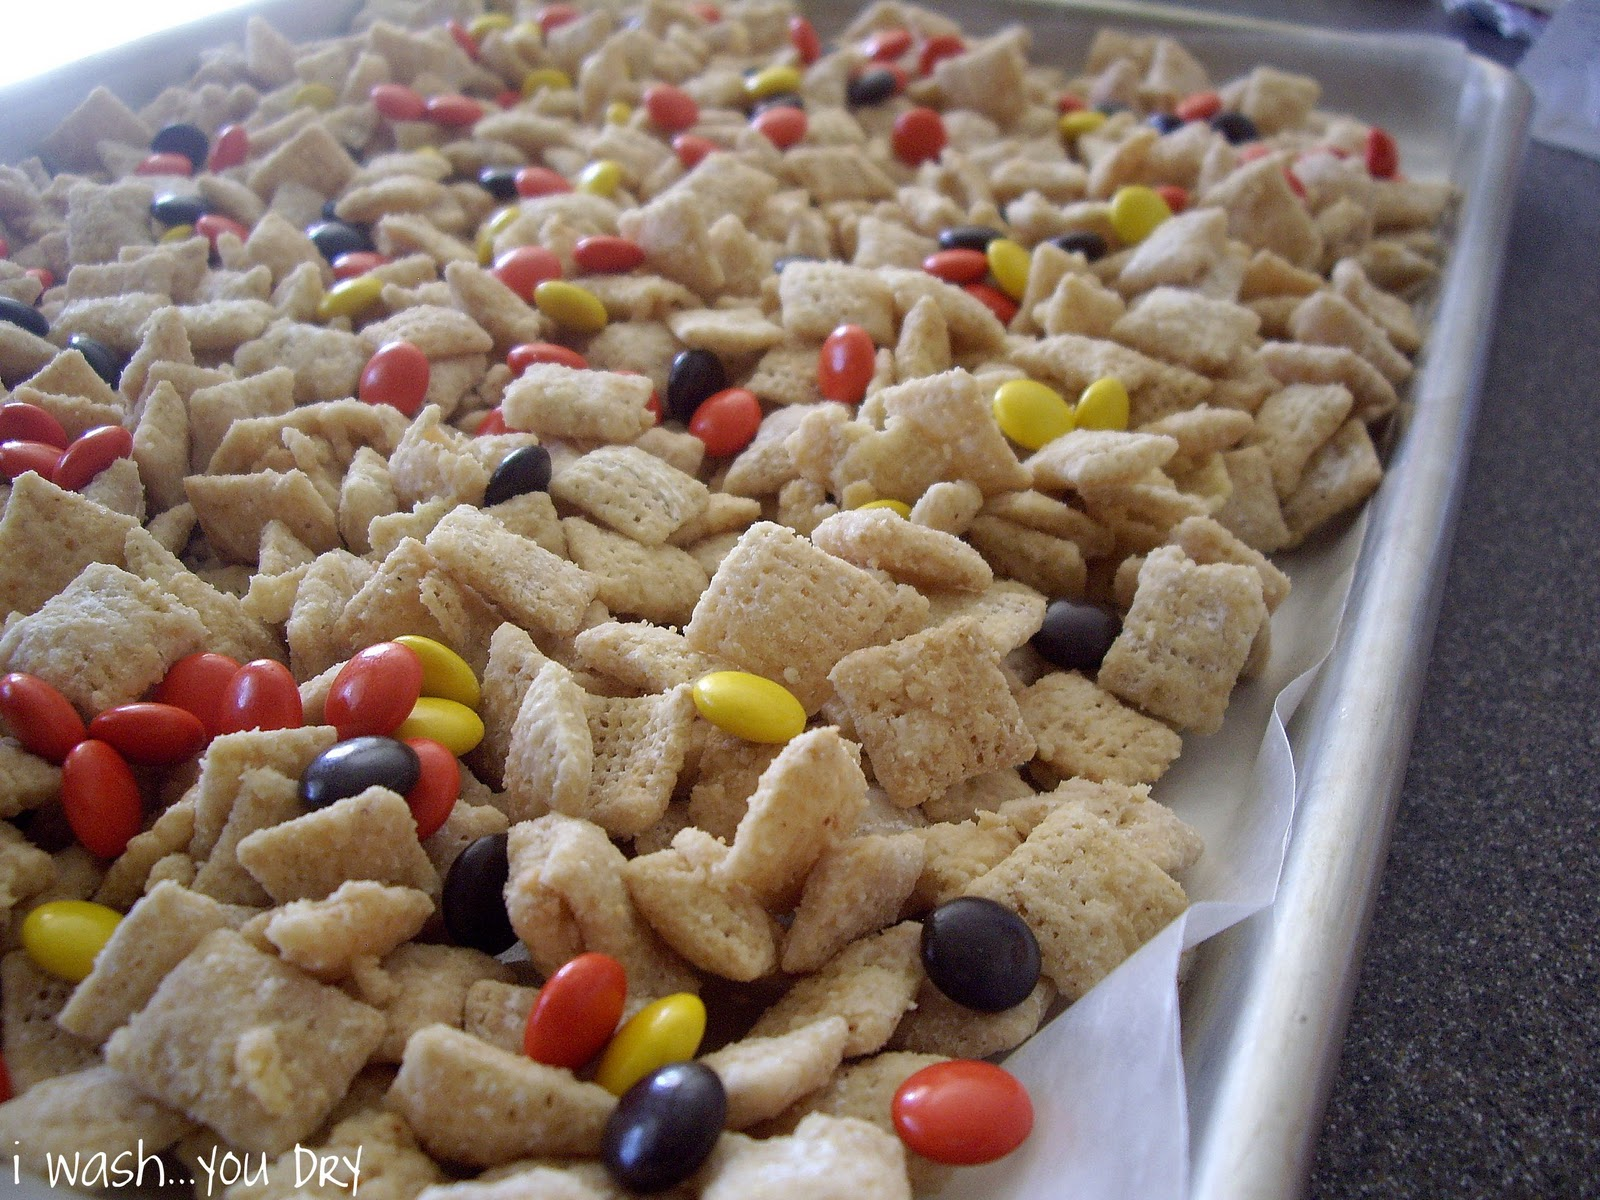 Throw in some Reese's Pieces and you have yourself a treat that will ...